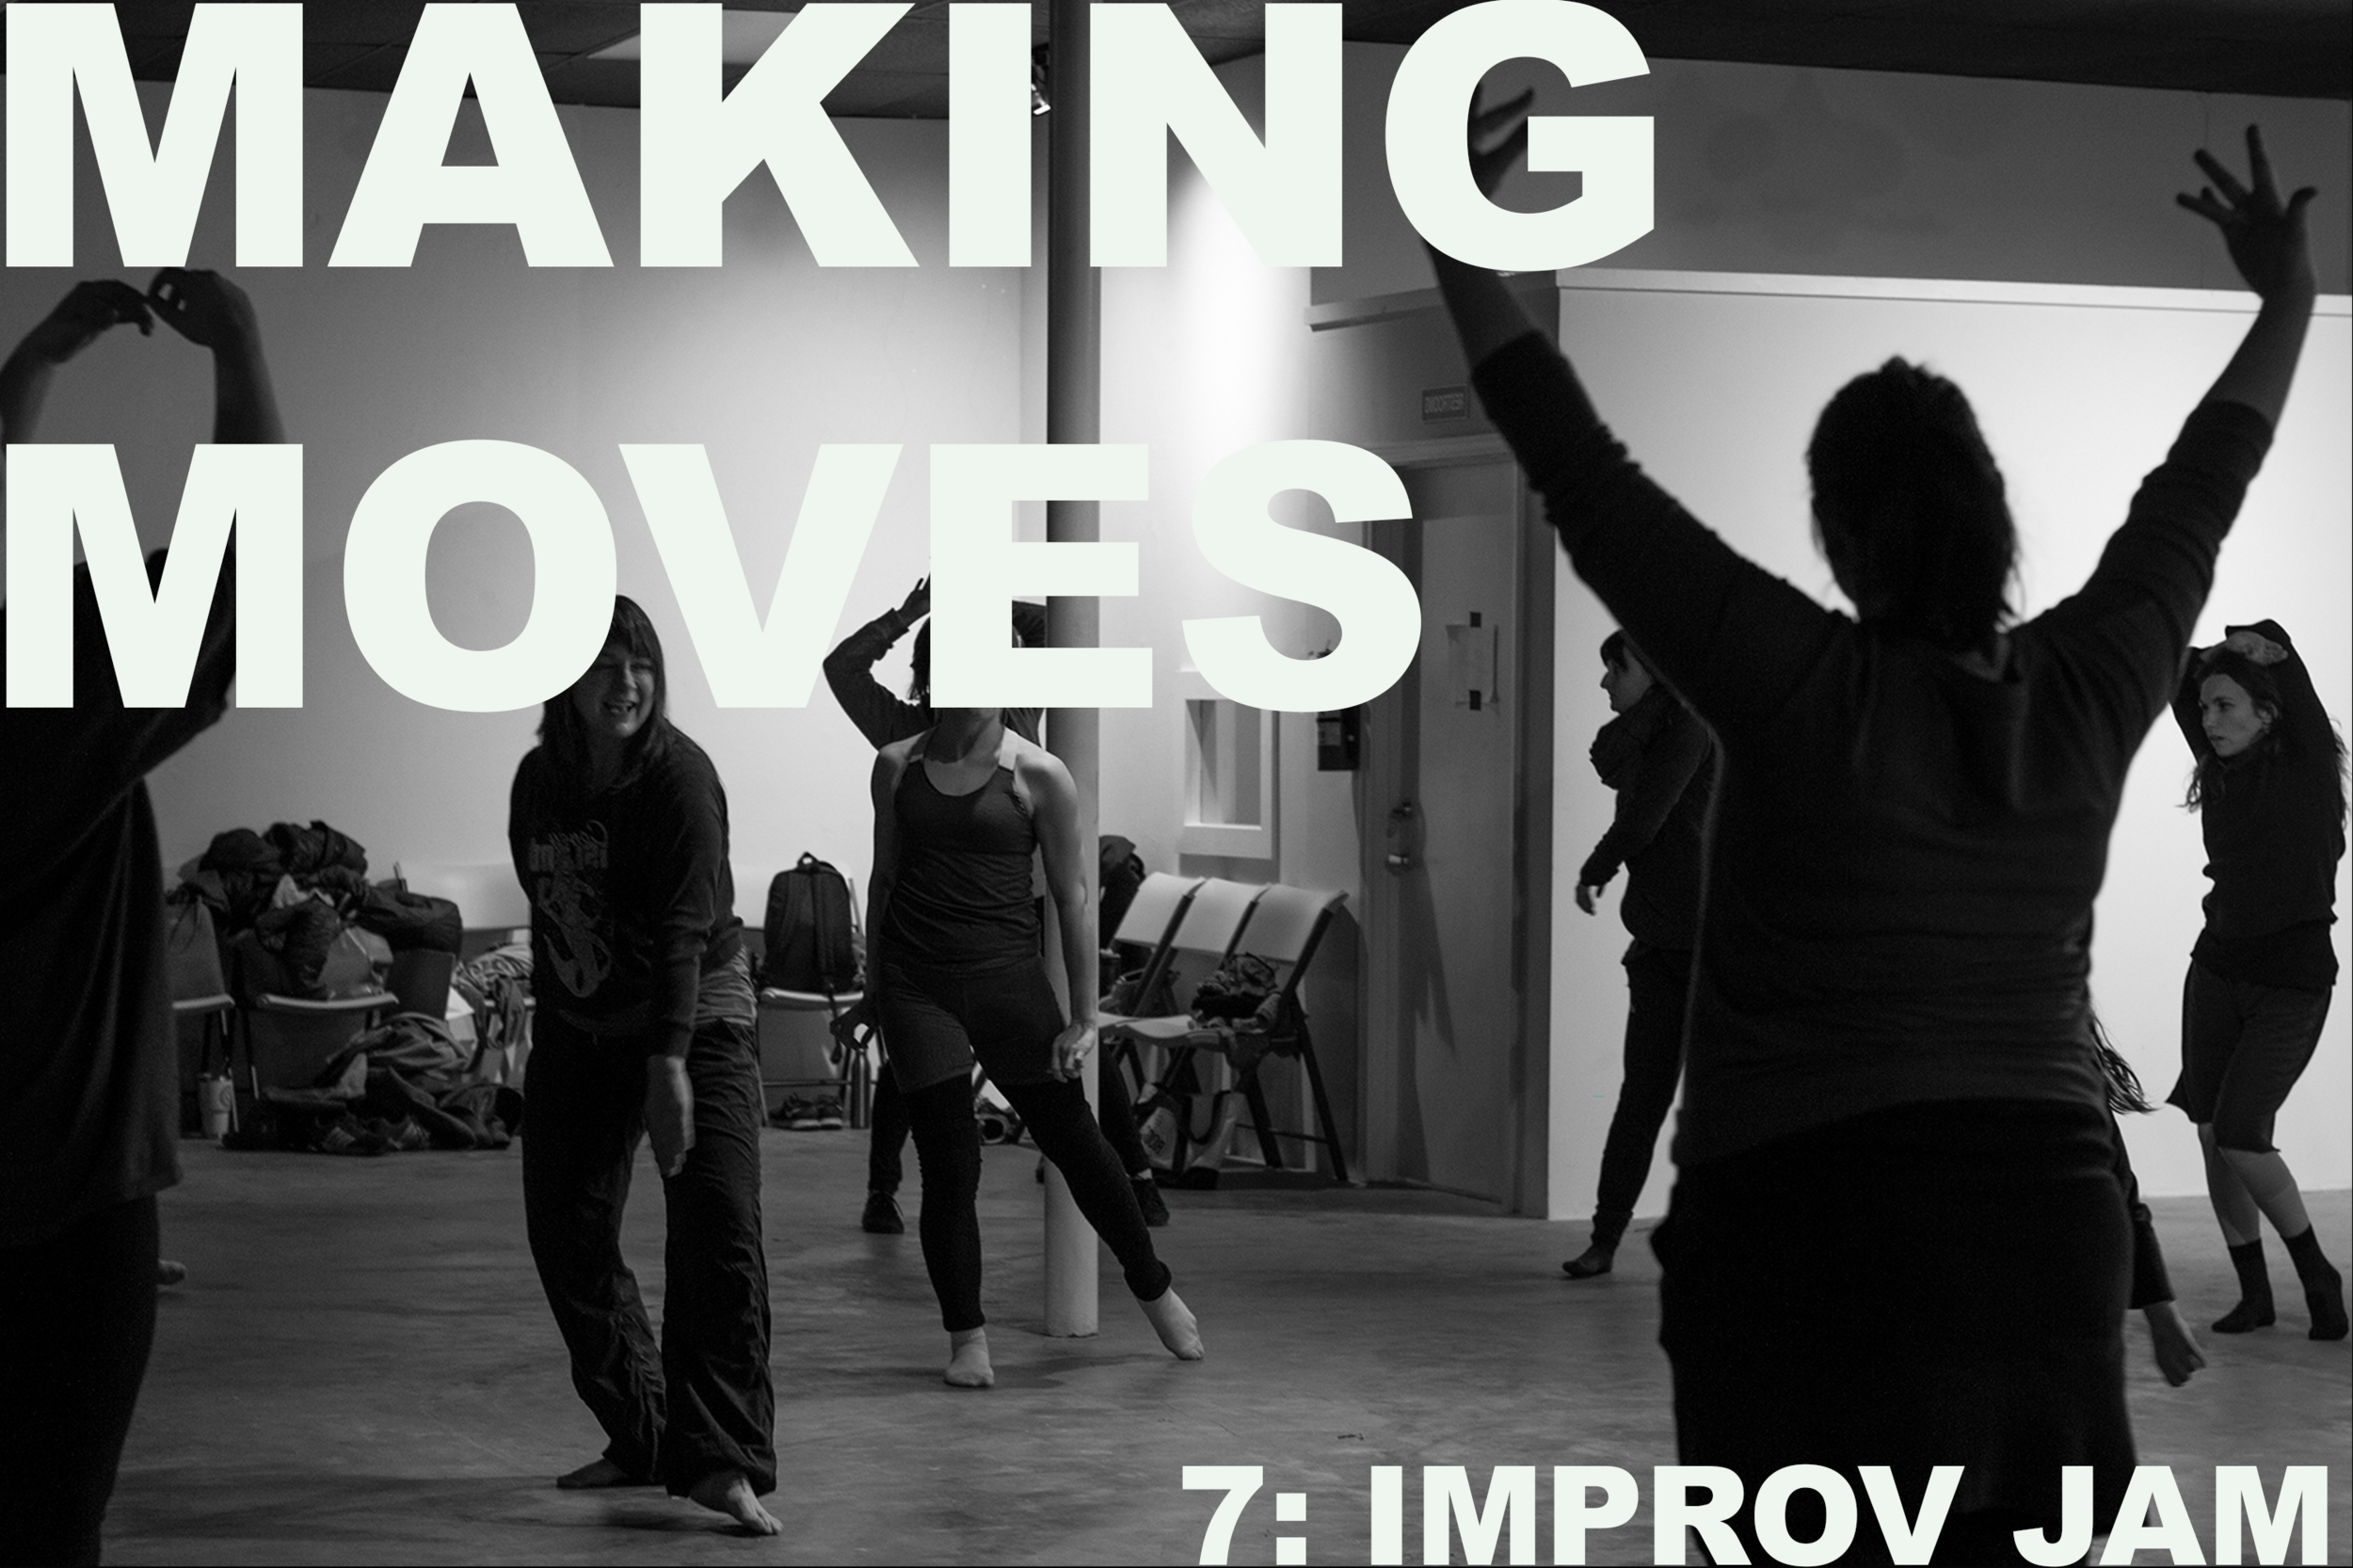 For Making Moves 7, let's kick off summer with an Improv Jam! Lead by local dance artist Jeramy Zimmerman, we will move through guided improvisation tasks and scores to connect with ourselves, other bodies, and space. Accompanied by a live musician, we will explore our moving selves in a safe and joyful environment. The Improv Jam is appropriate for movers of all backgrounds, ages, and abilities.   The event is FREE and open to the public. All ages are welcome.  A monthly gathering, Making Moves aims to build community through a shared passion for dance and movement. Throughout 2019, Making Moves will host improvisation jams and provide performance opportunities for local and regional dance makers. The series is produced by Kyle Mullins and made possible by Charlotte Street Foundation.